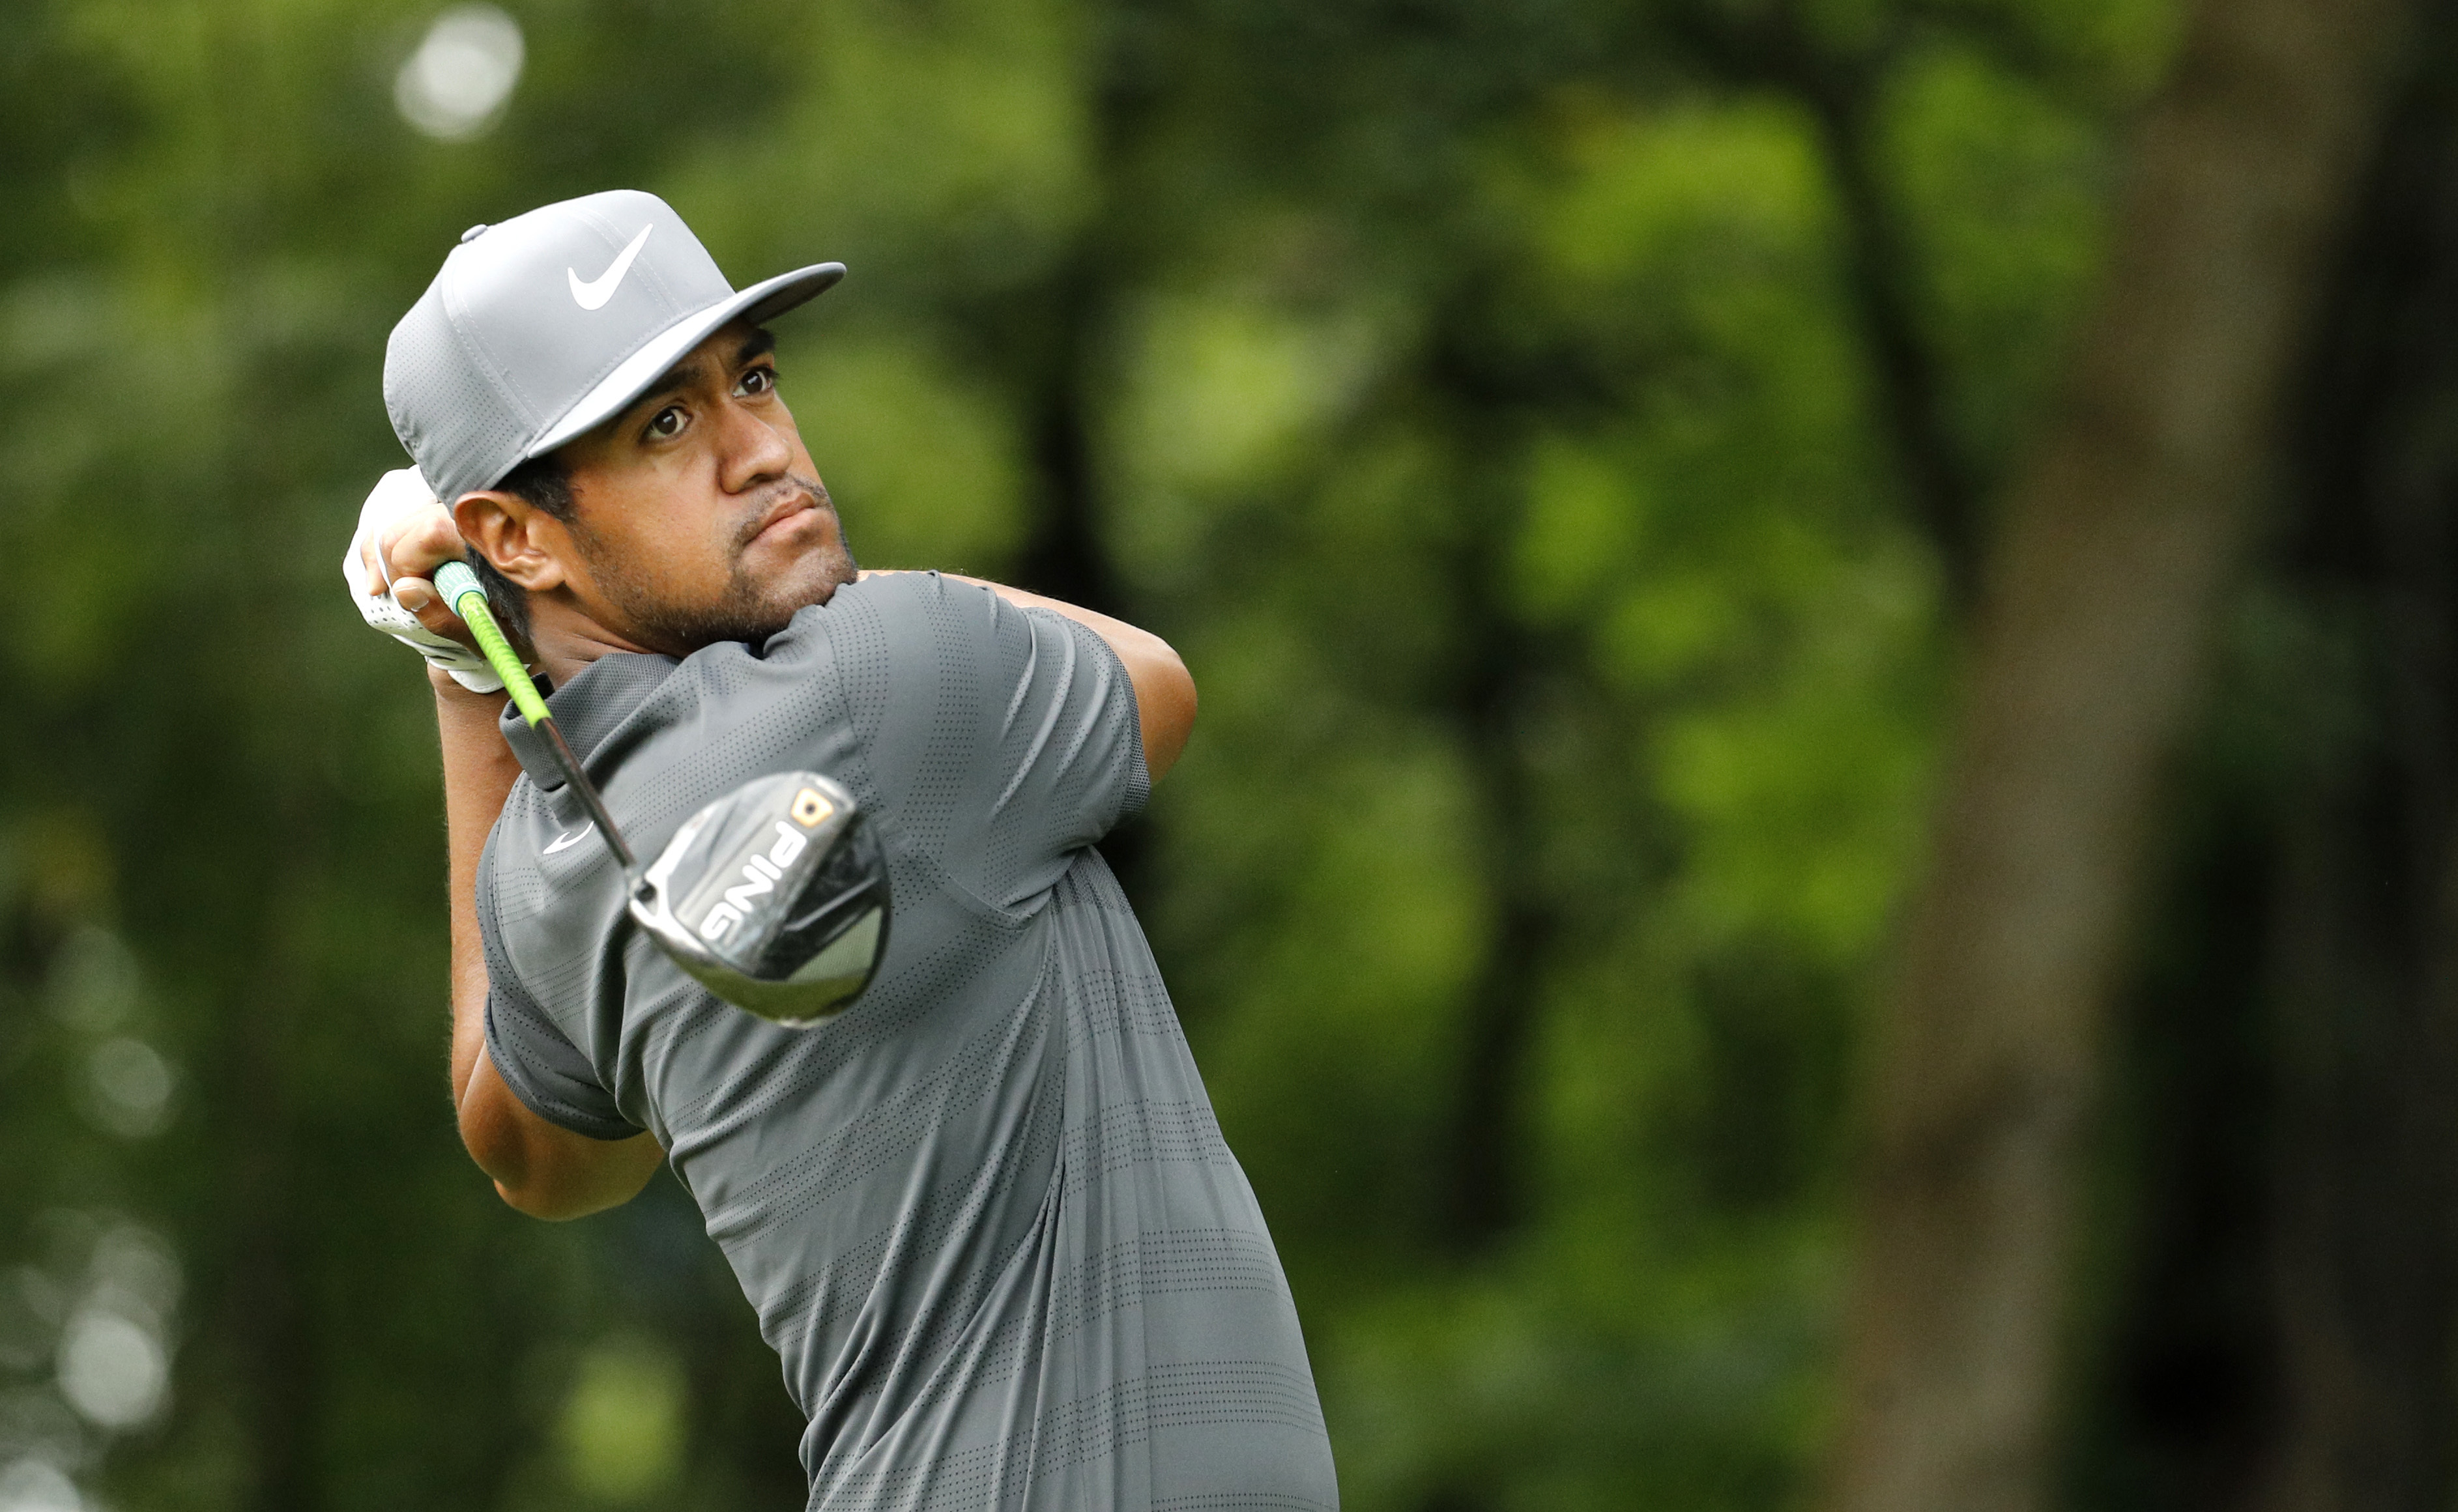 In this Tuesday, Aug. 7, 2018 file photo, Tony Finau hits on the 17th tee during a practice round for the PGA Championship golf tournament at Bellerive Country Club in St. Louis.